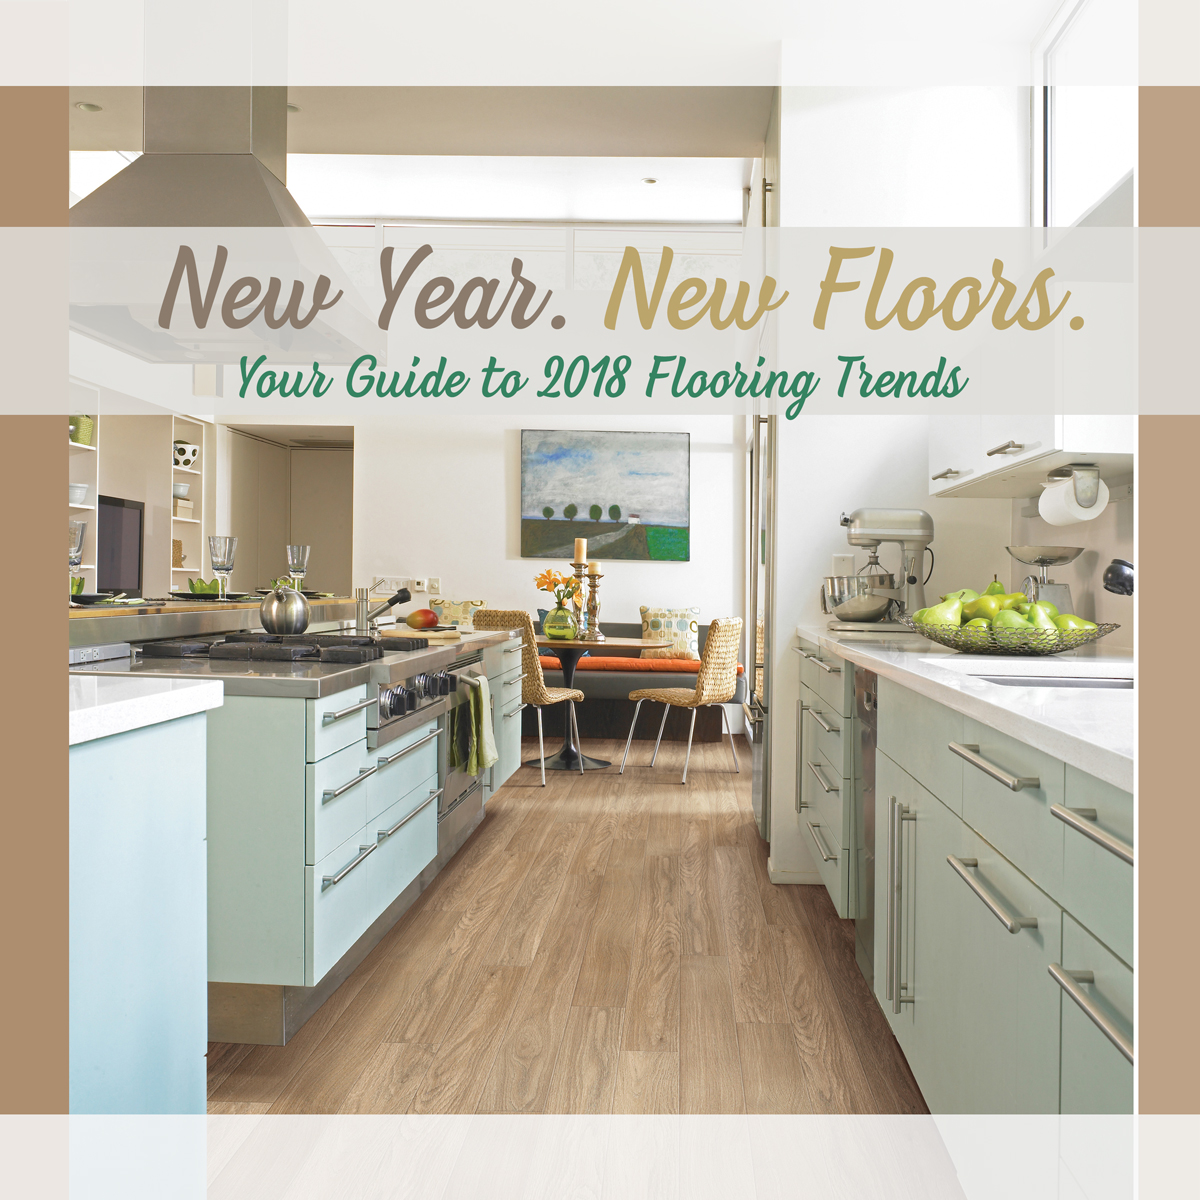 Your GUide to 2018 Flooring Trends